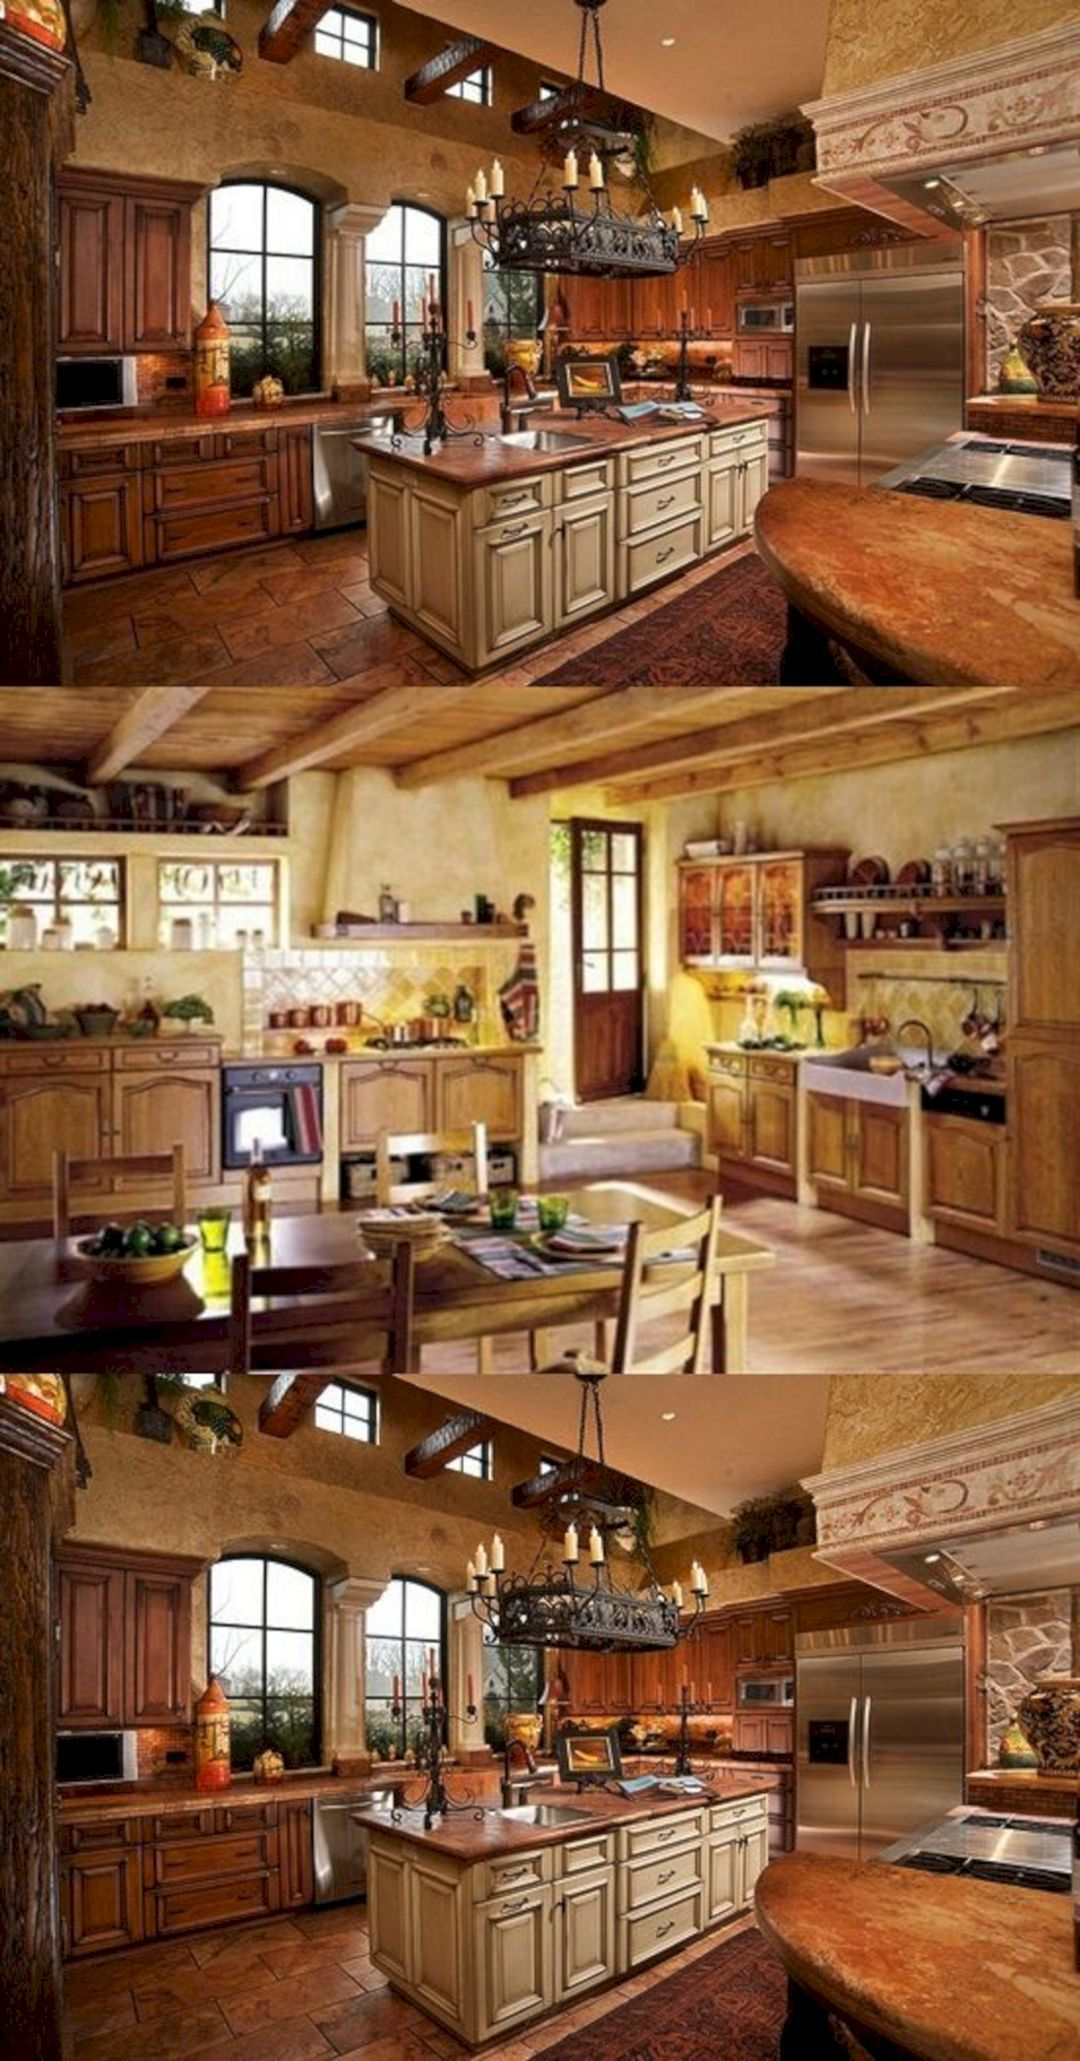 10 Best Rustic Italian Houses Decorating Ideas With Images